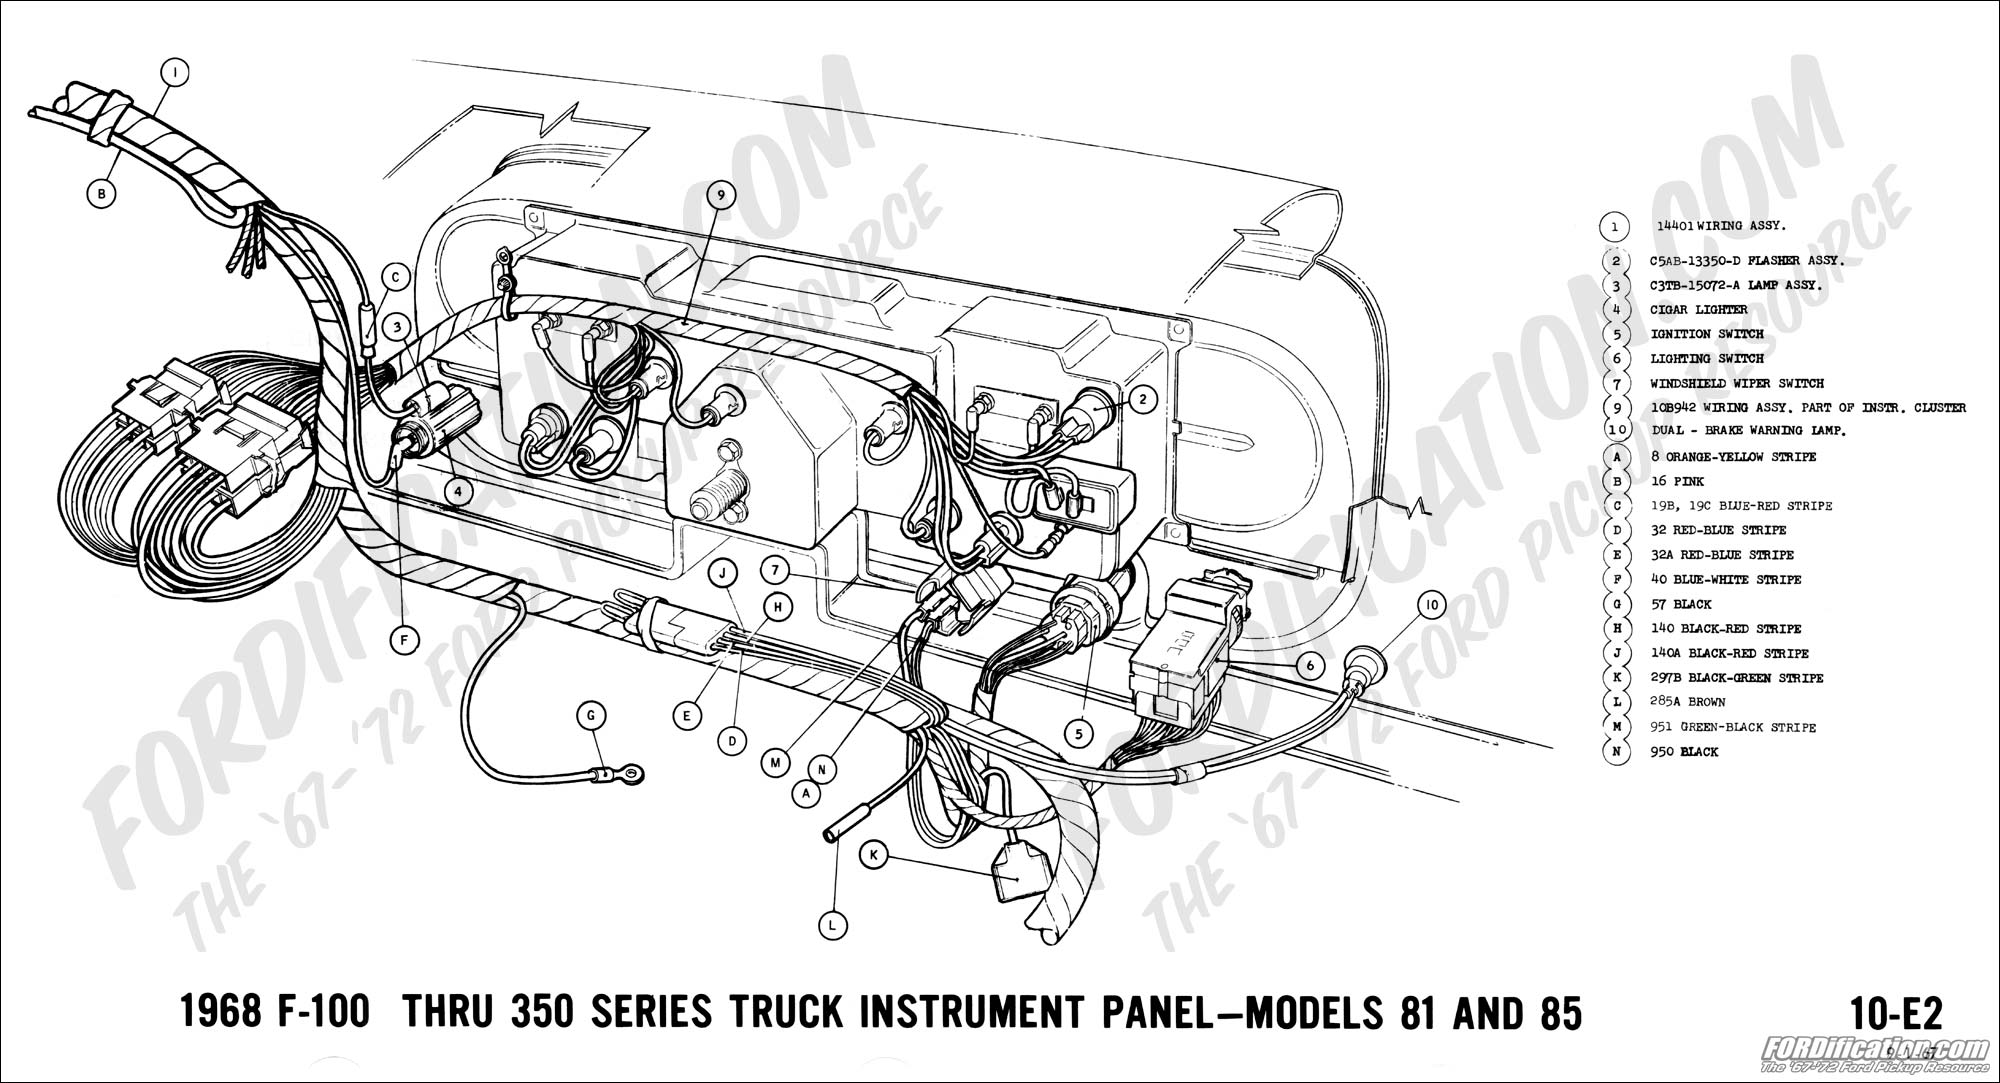 Ford Truck Technical Drawings And Schematics Section H Wiring 1966 Ford  F100 Wiring Diagram 1970 Ford F100 Wiring Diagram